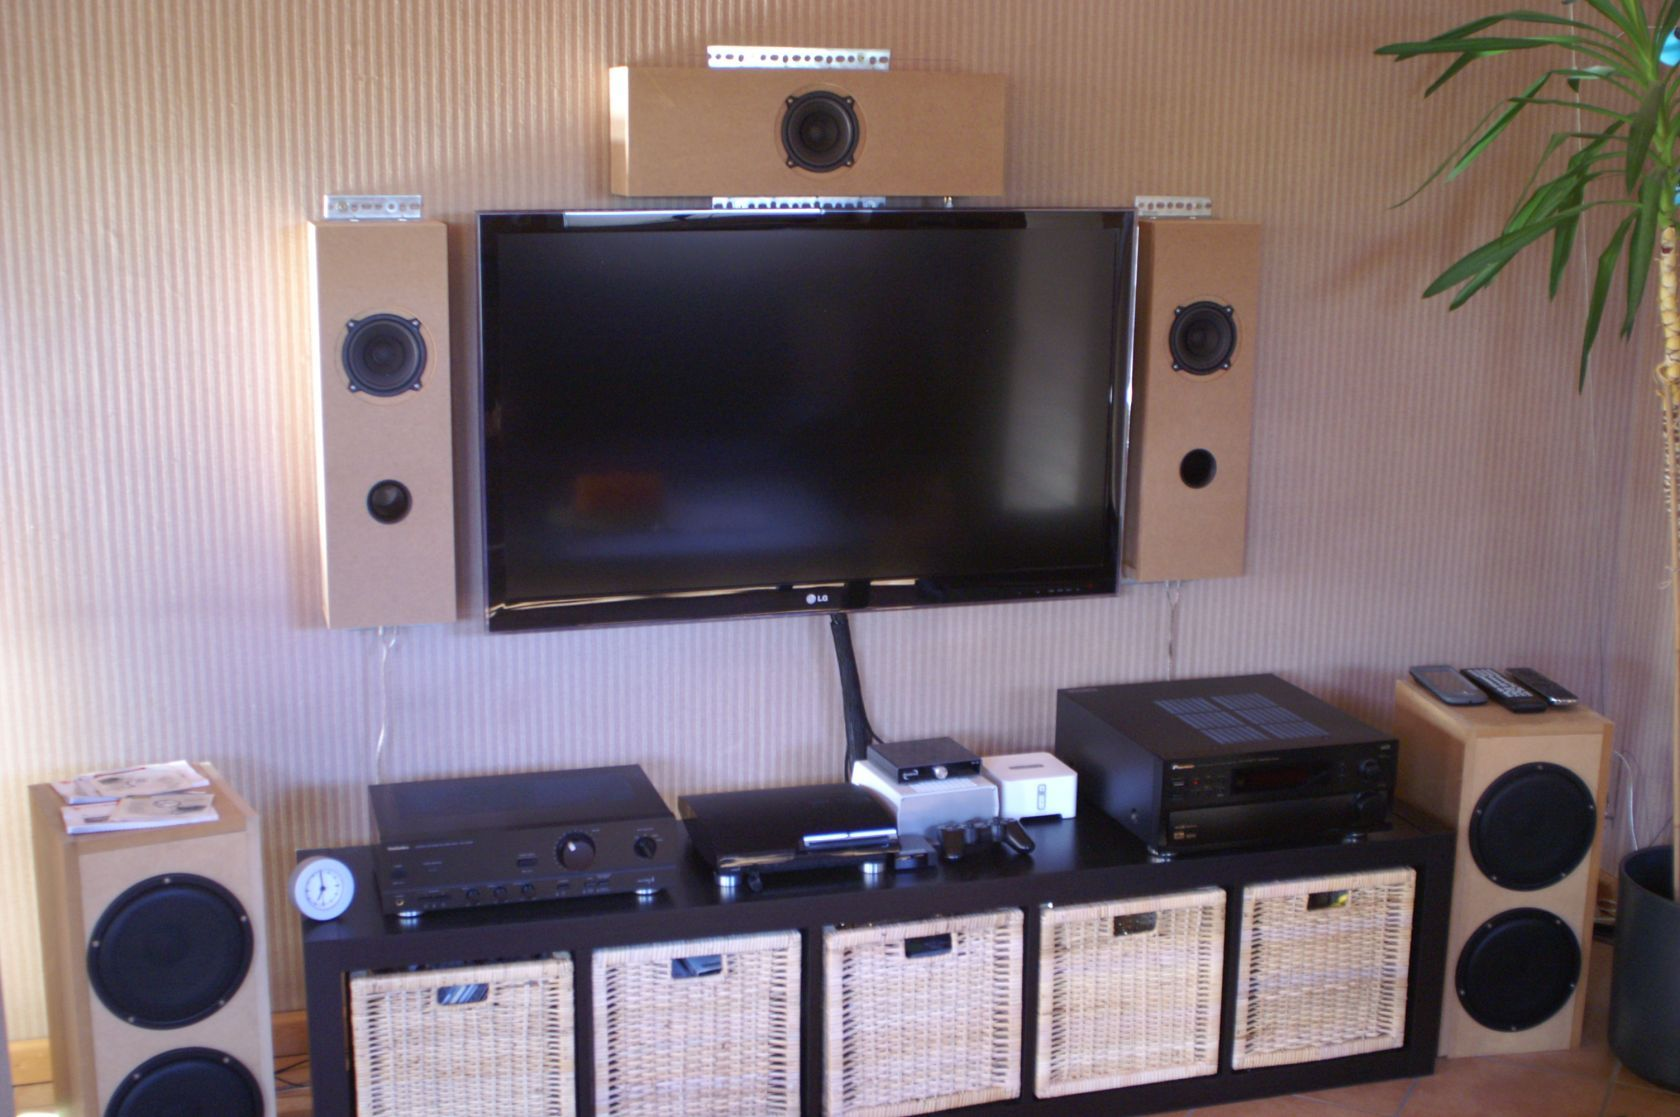 tv wand doityourself lautsprecher tv wand hifi. Black Bedroom Furniture Sets. Home Design Ideas